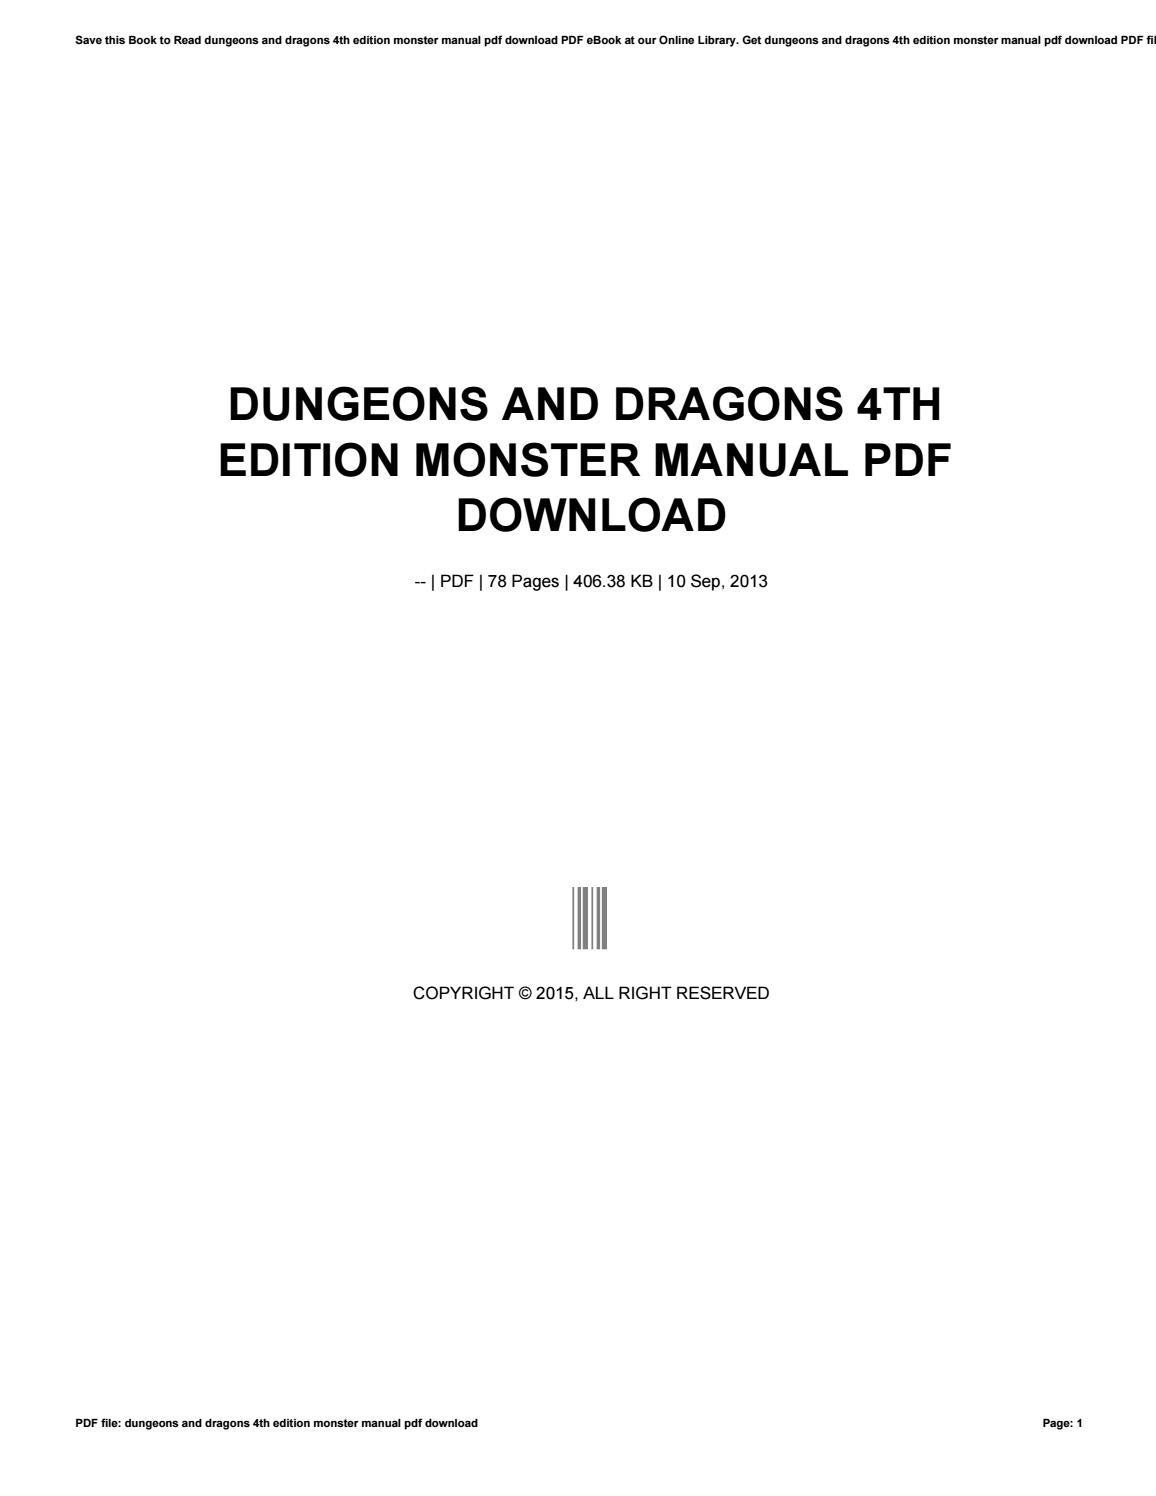 Dungeons and dragons 4th edition monster manual pdf download by as6717 -  issuu